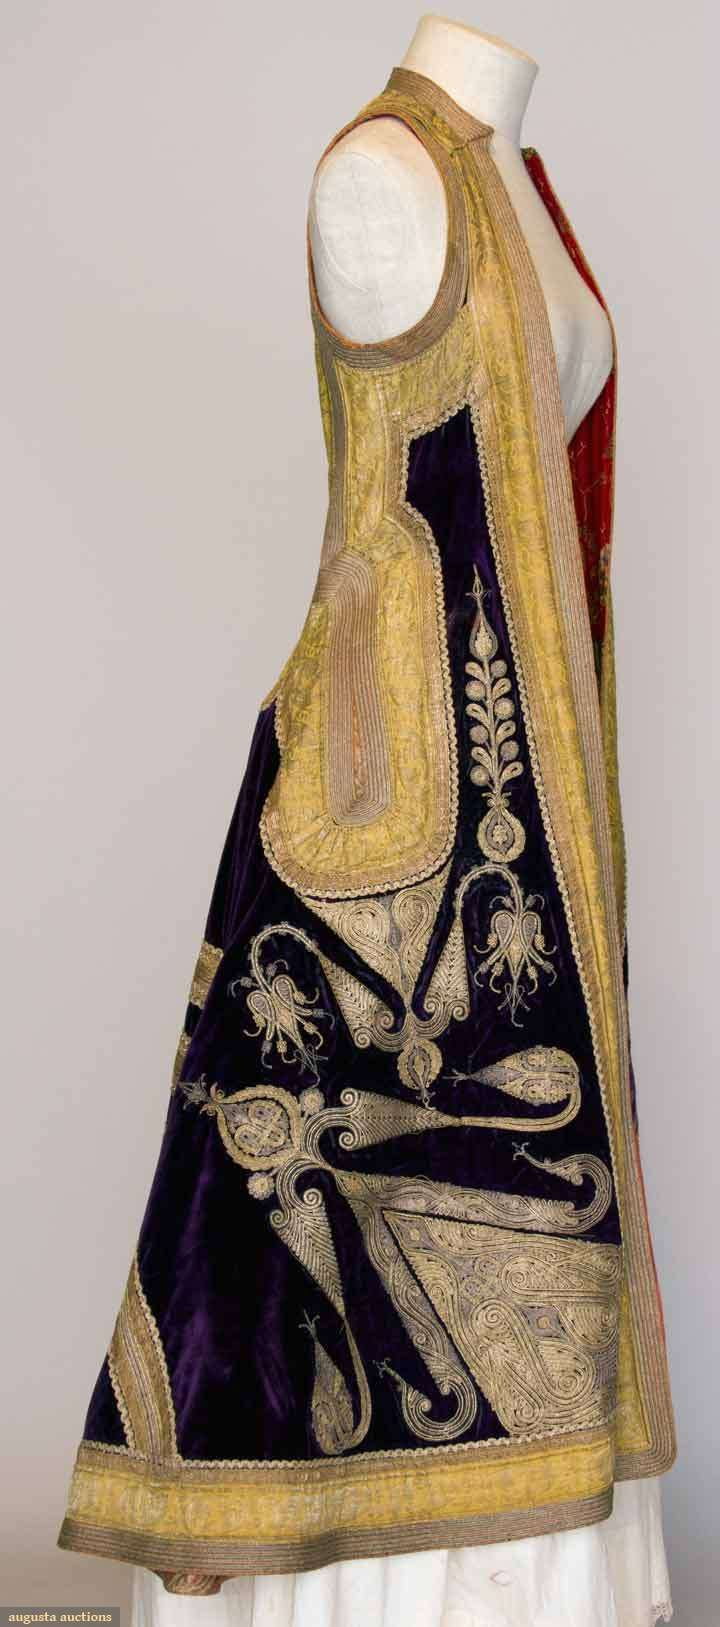 Albania, Woman's Gold Embroidered Coat, Sleeveless purple velvet w/ elaborate gold couched embroidery & gold galloon, printed cotton lining, c. 1900